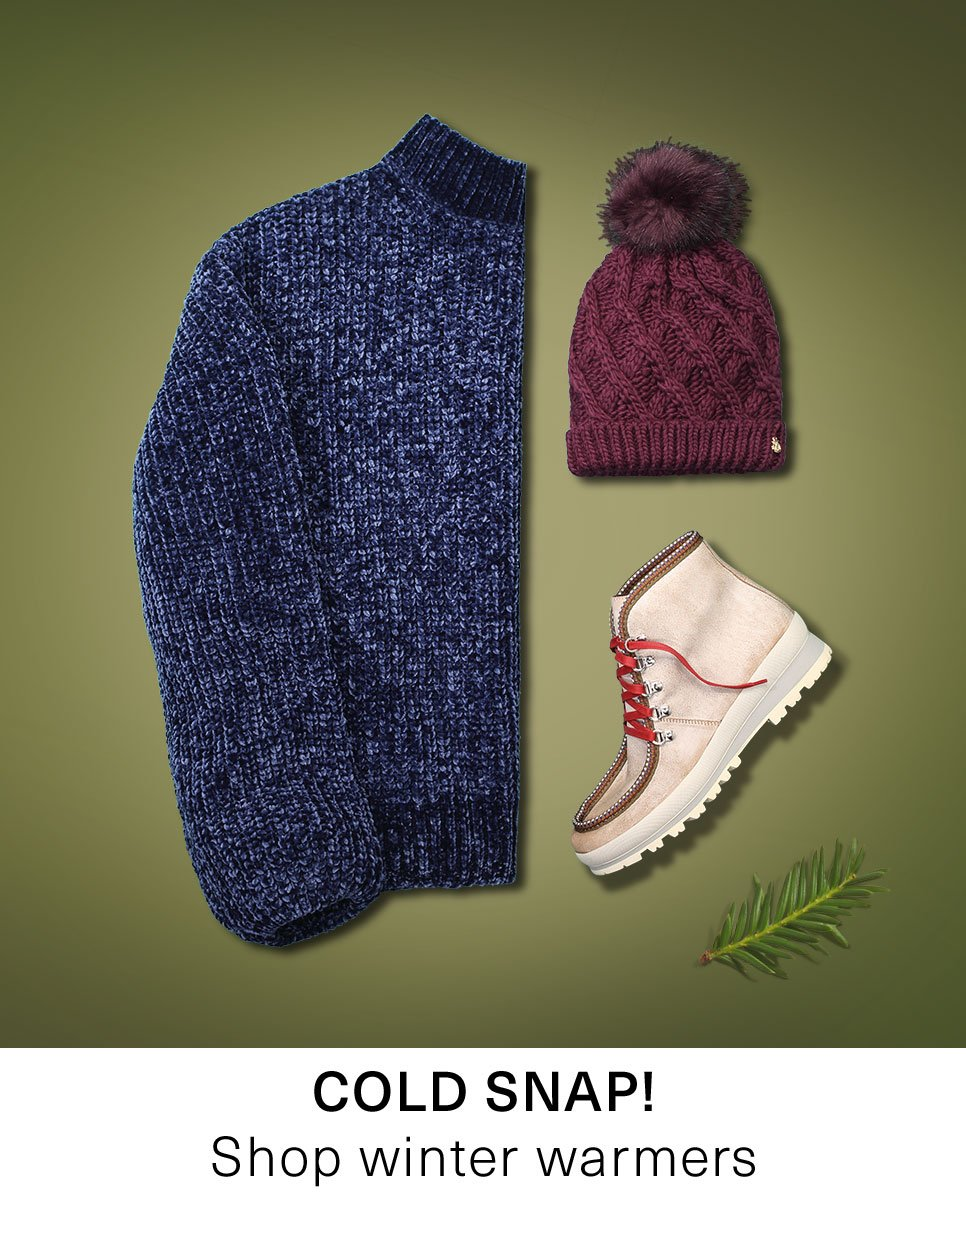 Cold snap: Shop winter warmers